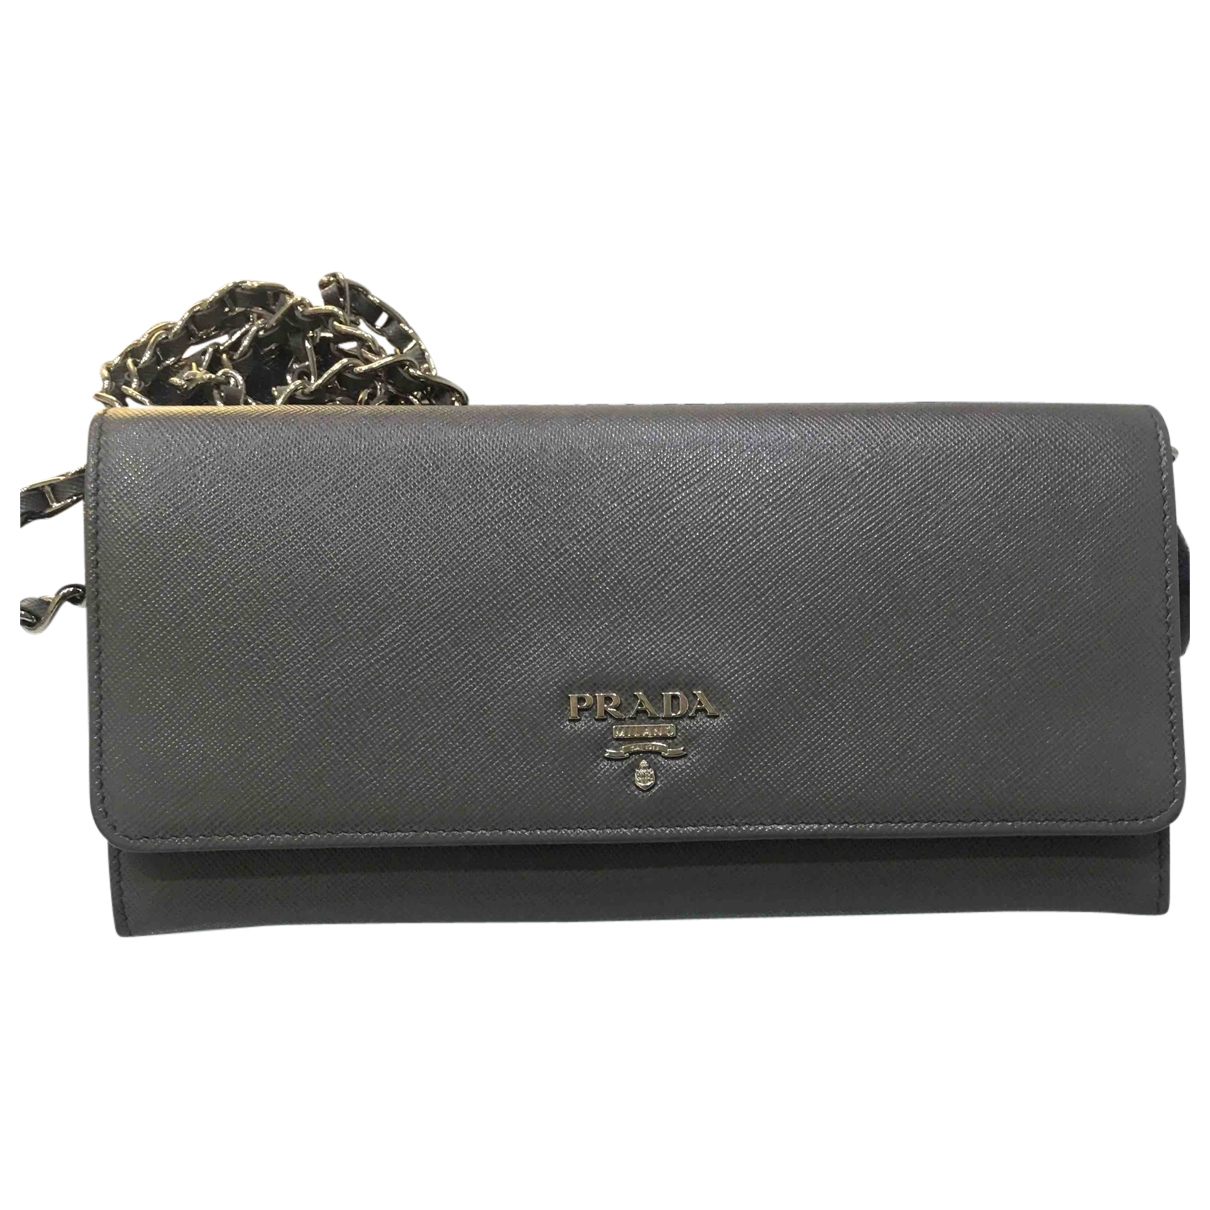 Prada \N Grey Leather Clutch bag for Women \N